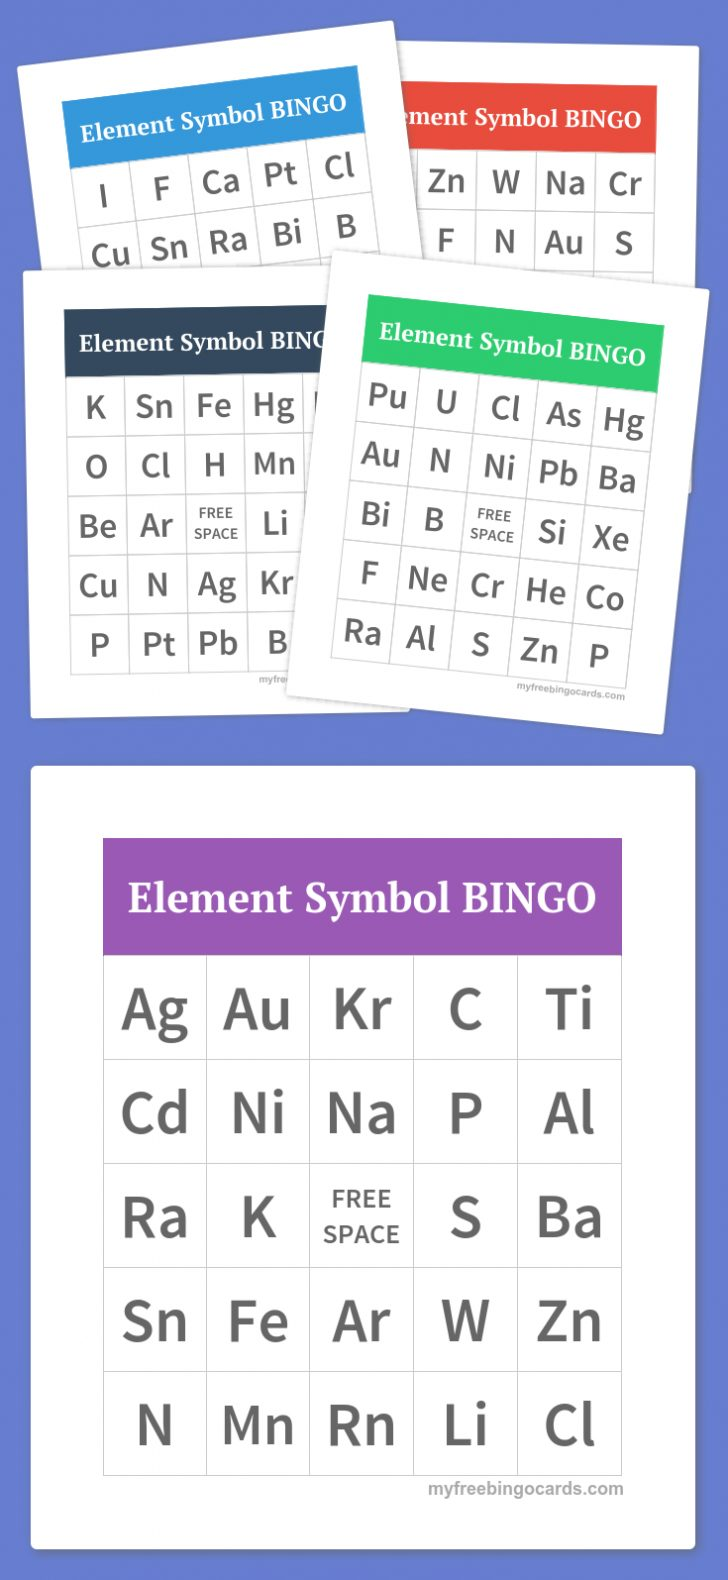 Printable Element Bingo Cards